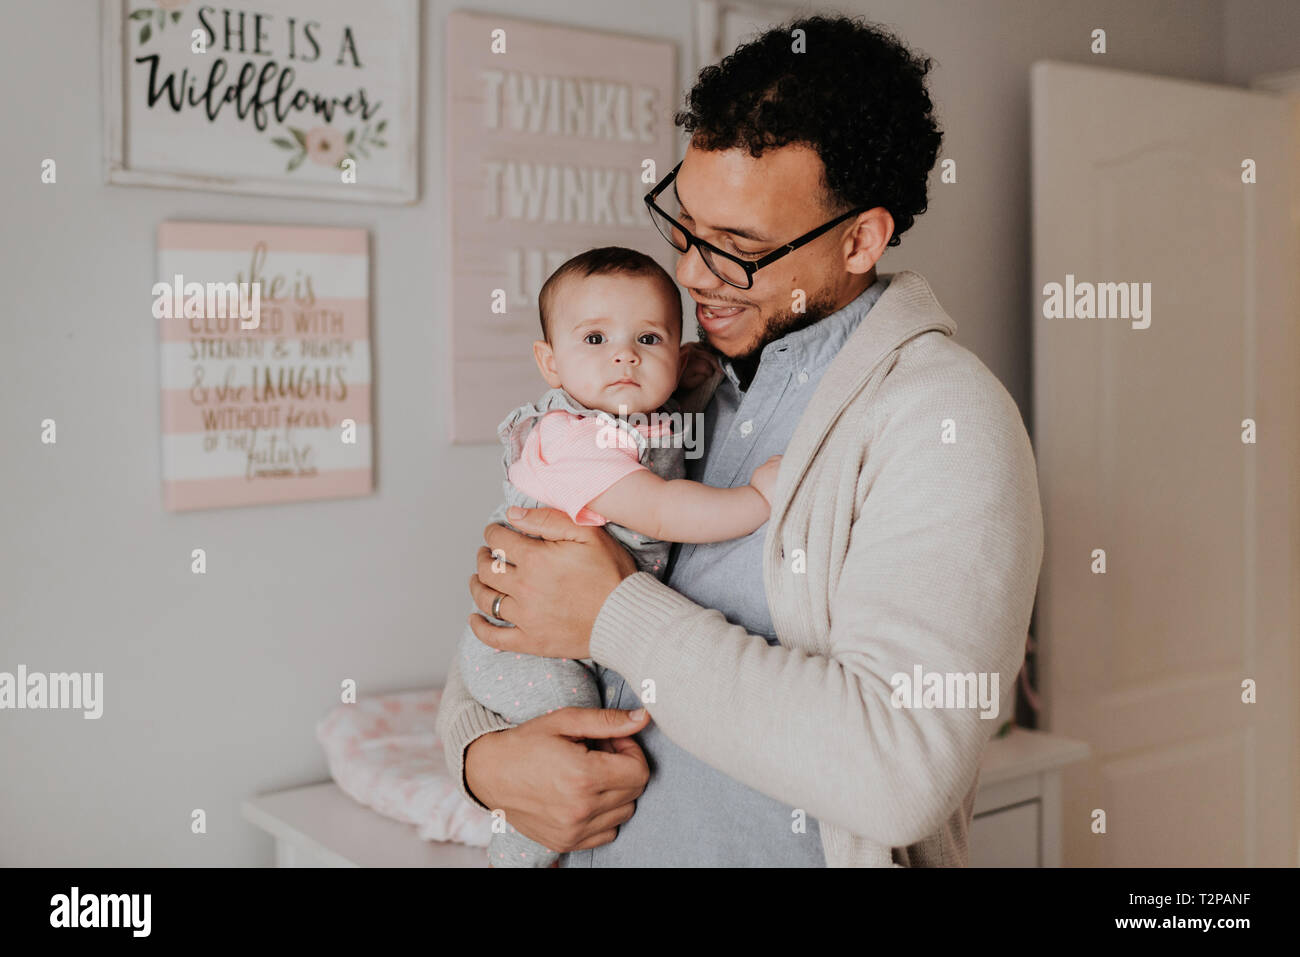 Father with baby daughter in baby's room - Stock Image